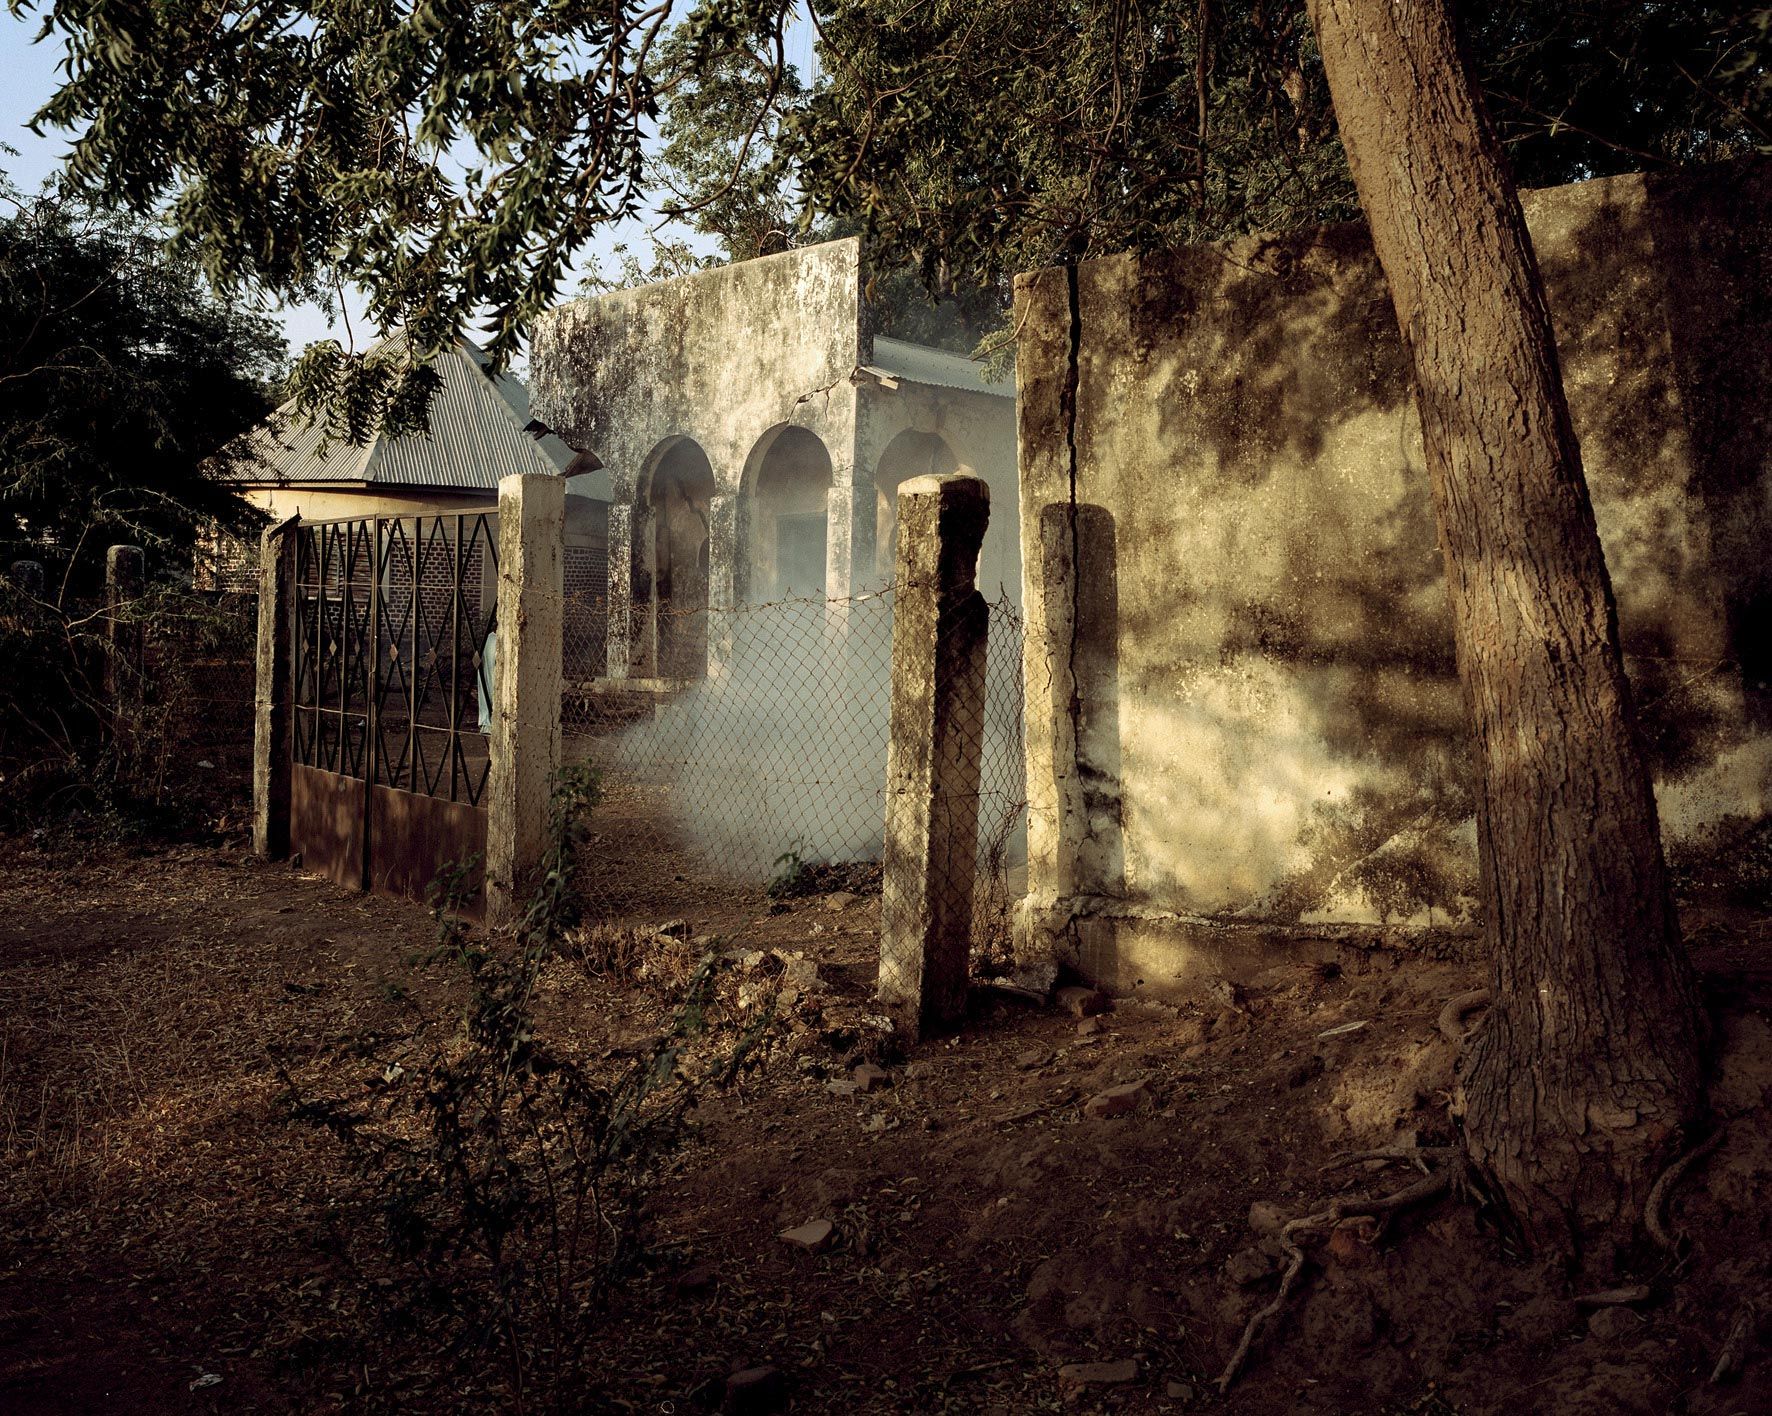 Residentur (Residence), Kamerun 2012. Archival pigment print. © Andréas Lang. Supplied by Deutsches Historisches Museum.